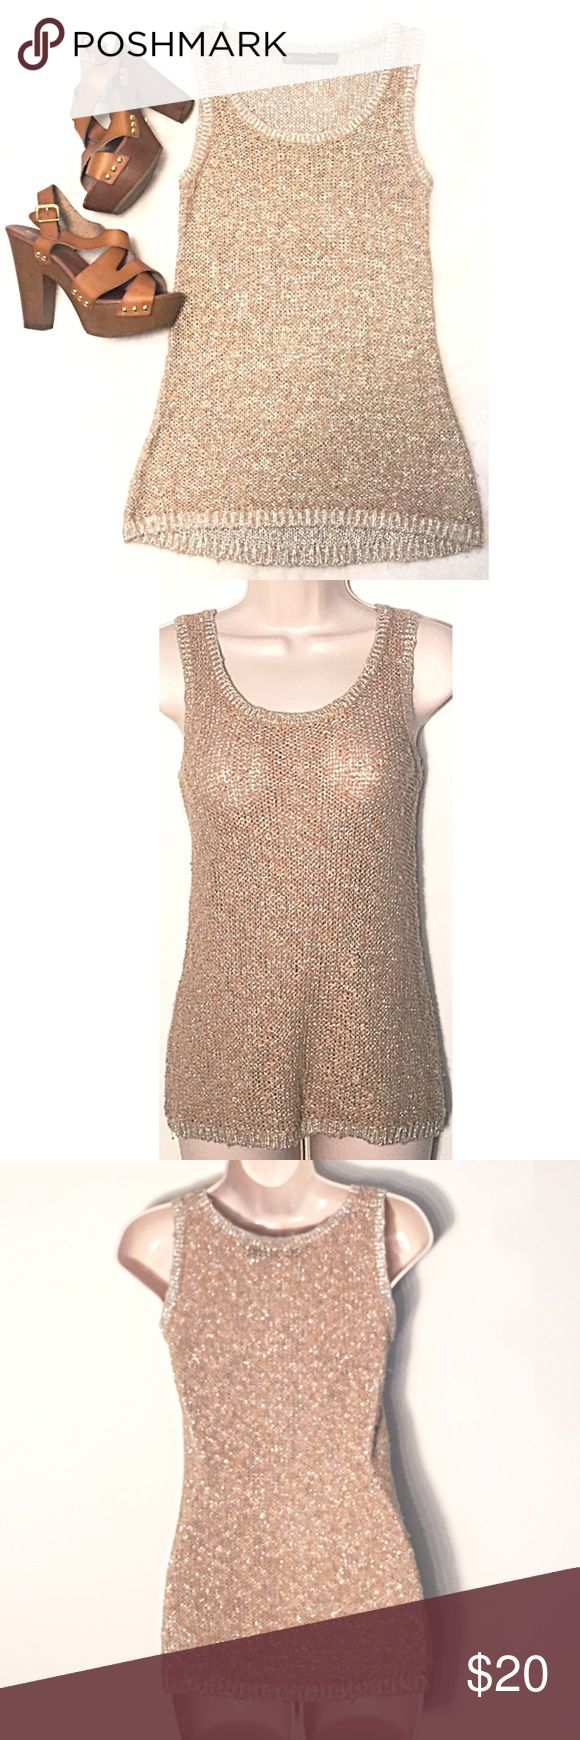 """❣BOGO 1/2 off❣🆕Gorgeous crochet sparkly tank top NWOT, flawless. From The Limited's Outback Red collection. Sparkly silver thread with golden tan distressed yarn. Extra small. Approx 25"""" long & 17"""" flat across bust. ❣Ask me how to BOGO HALF price! ✖️I do NOT MODEL✖️ 🔴Bundle to save! 🔴NO TRADES. 🔴REASONABLE offers welcome via offer button. The Limited Tops Tank Tops"""